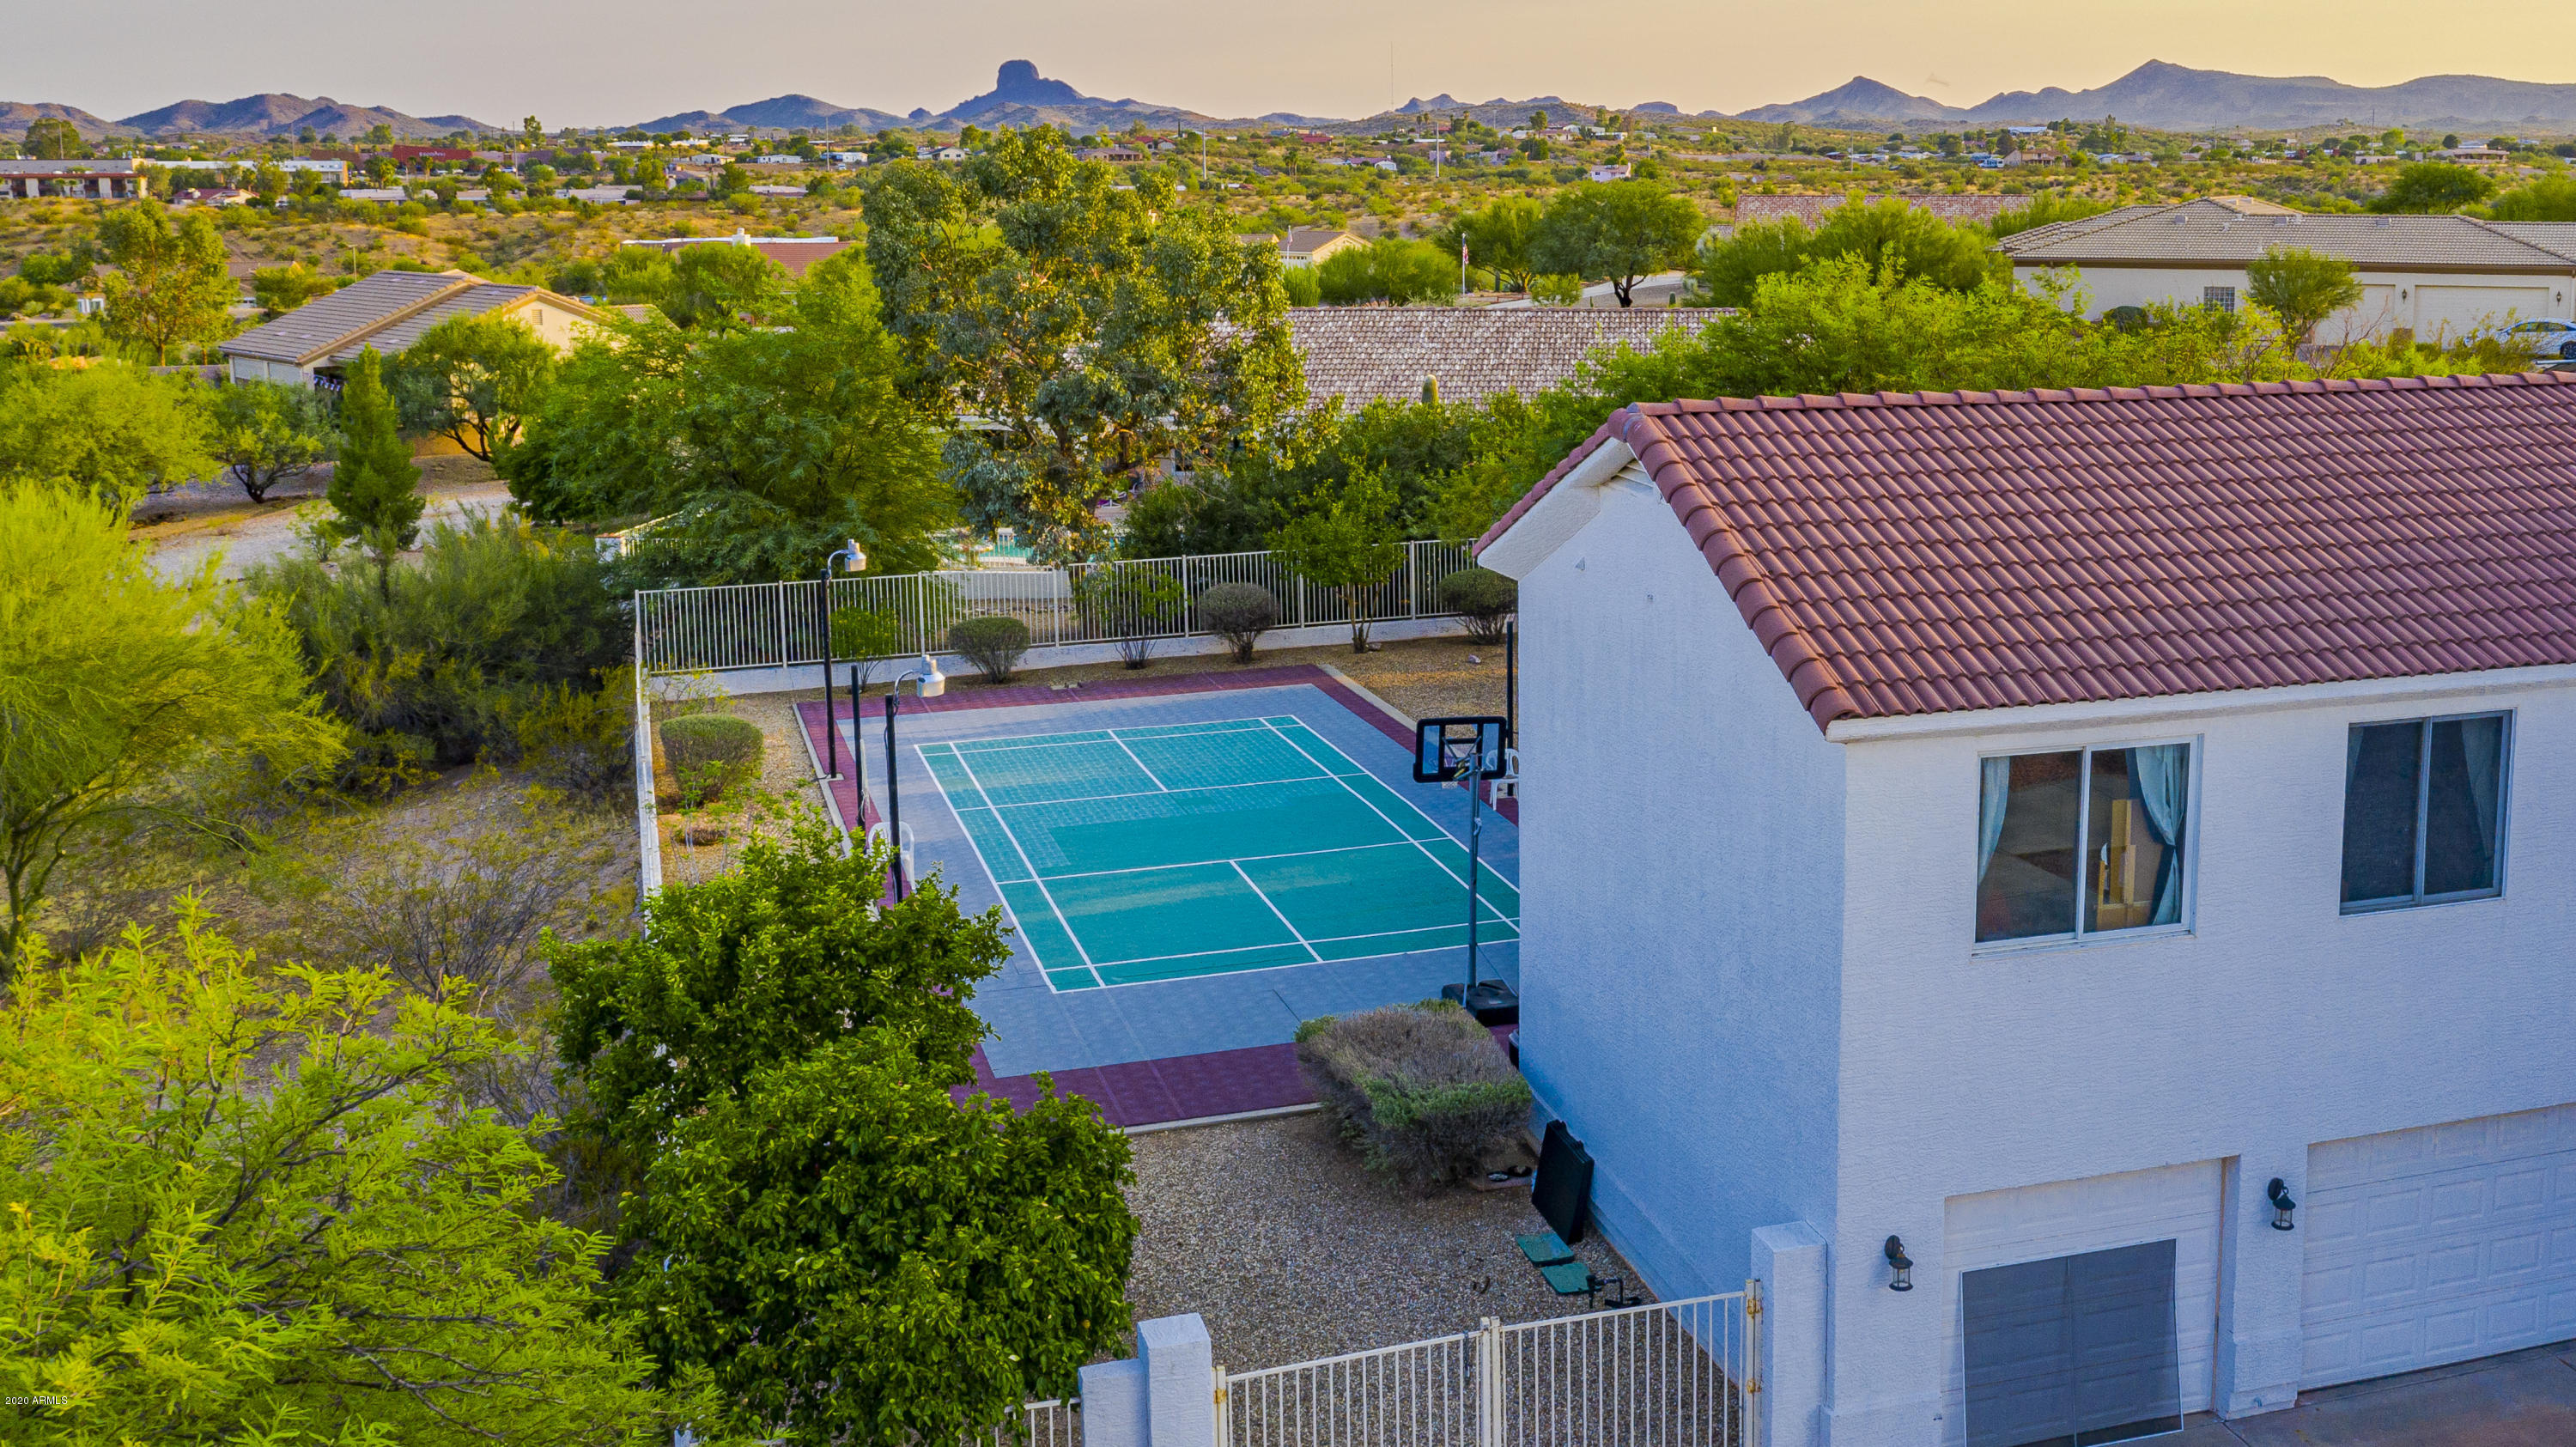 MLS 6133754 2075 W SILVERLODE Drive, Wickenburg, AZ 85390 Wickenburg AZ Private Pool